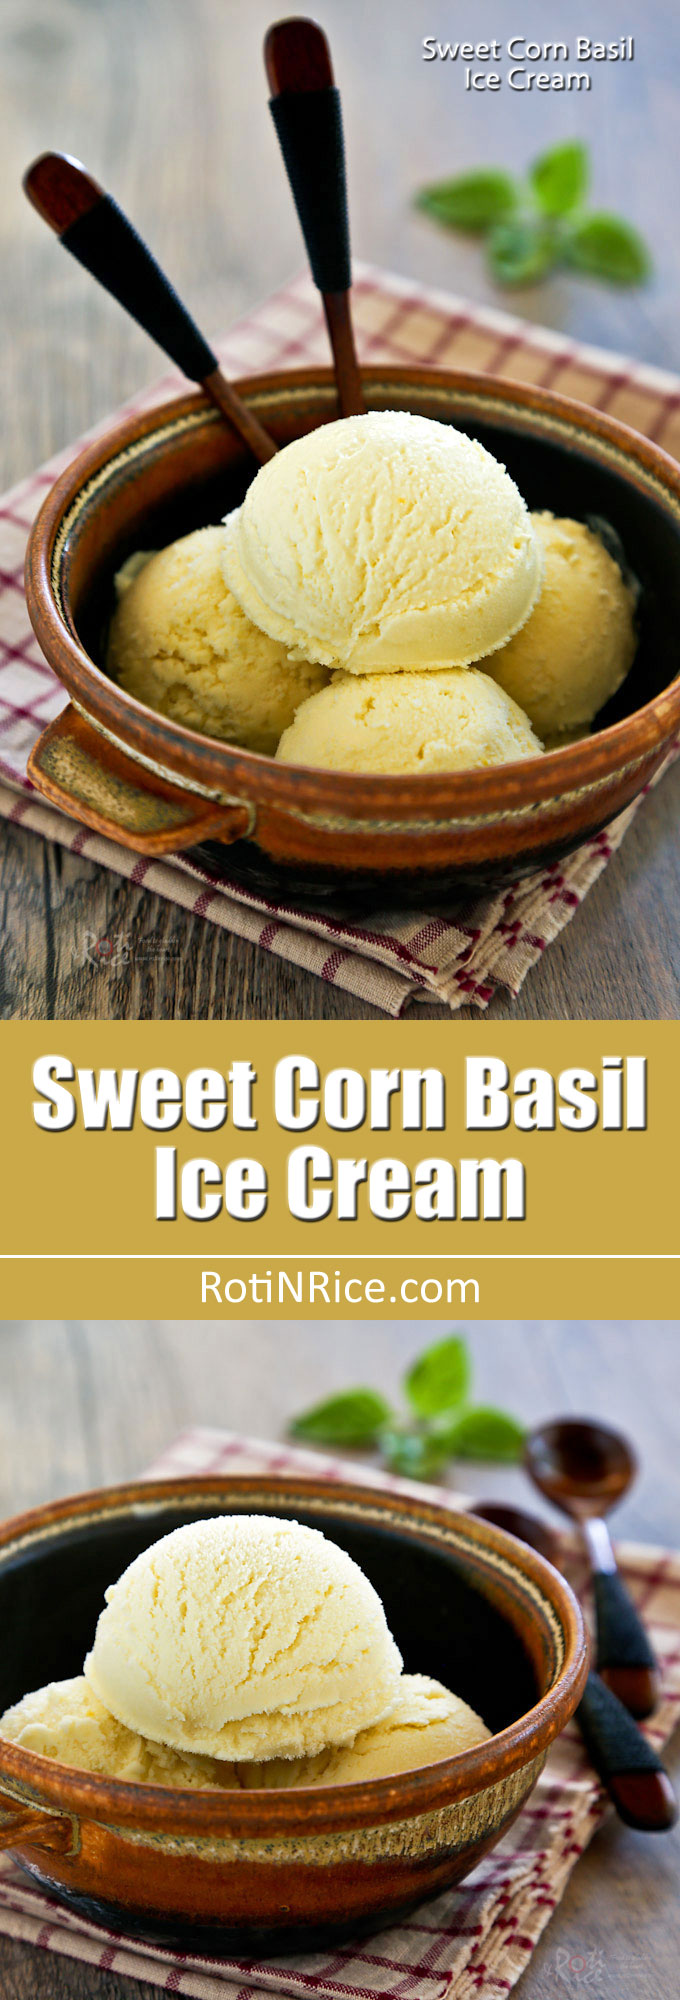 This fragrant Sweet Corn Basil Ice Cream is a delicious treat any time of the year. It is fully infused with fresh corn and a slightly spicy basil flavor.   RotiNRice.com